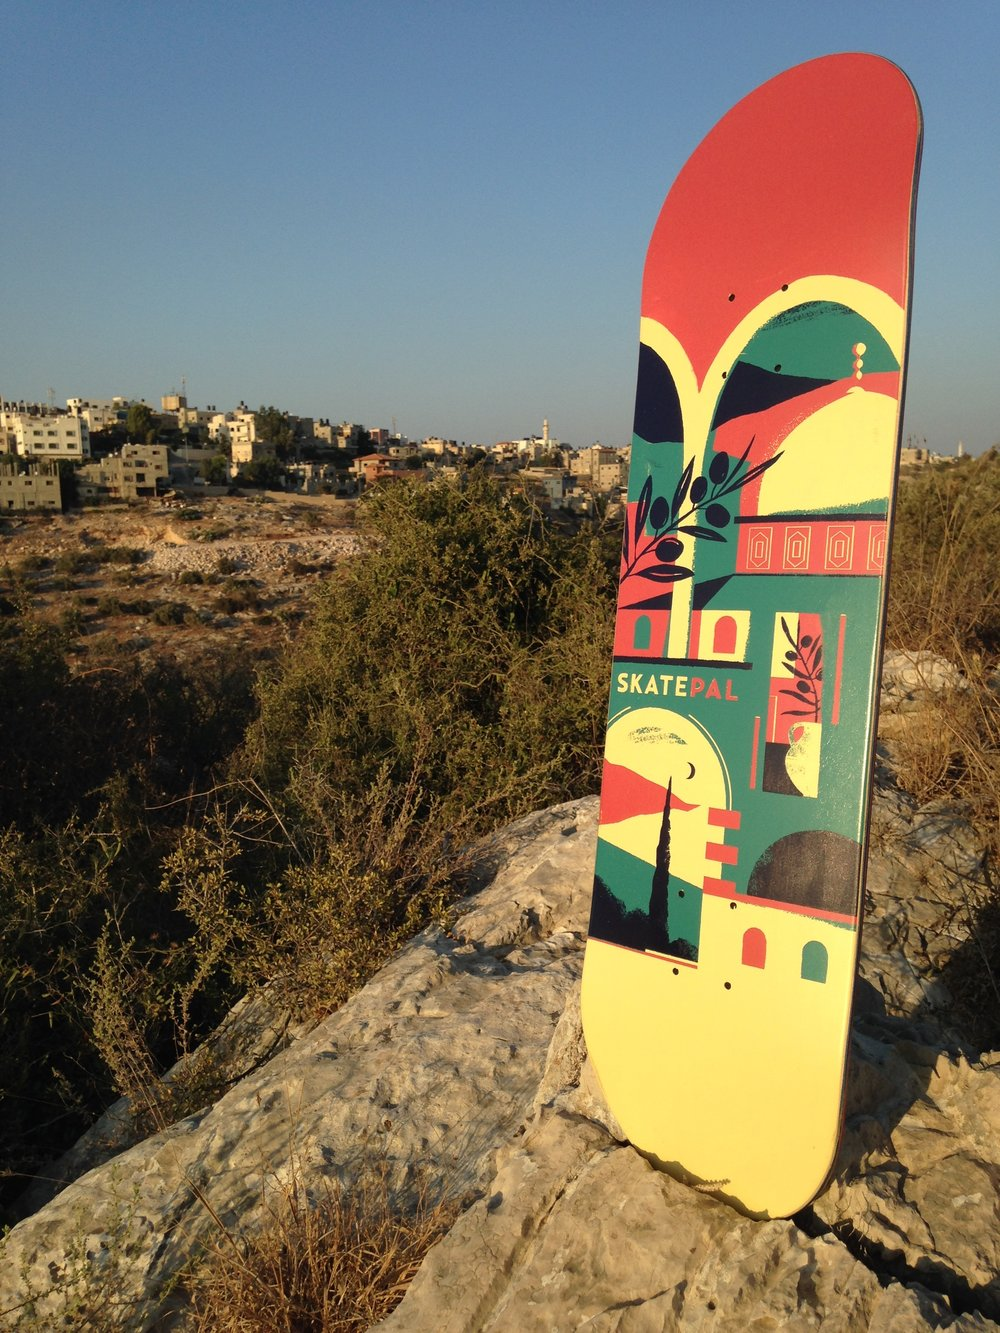 The board in it's natural habitat: Palestine